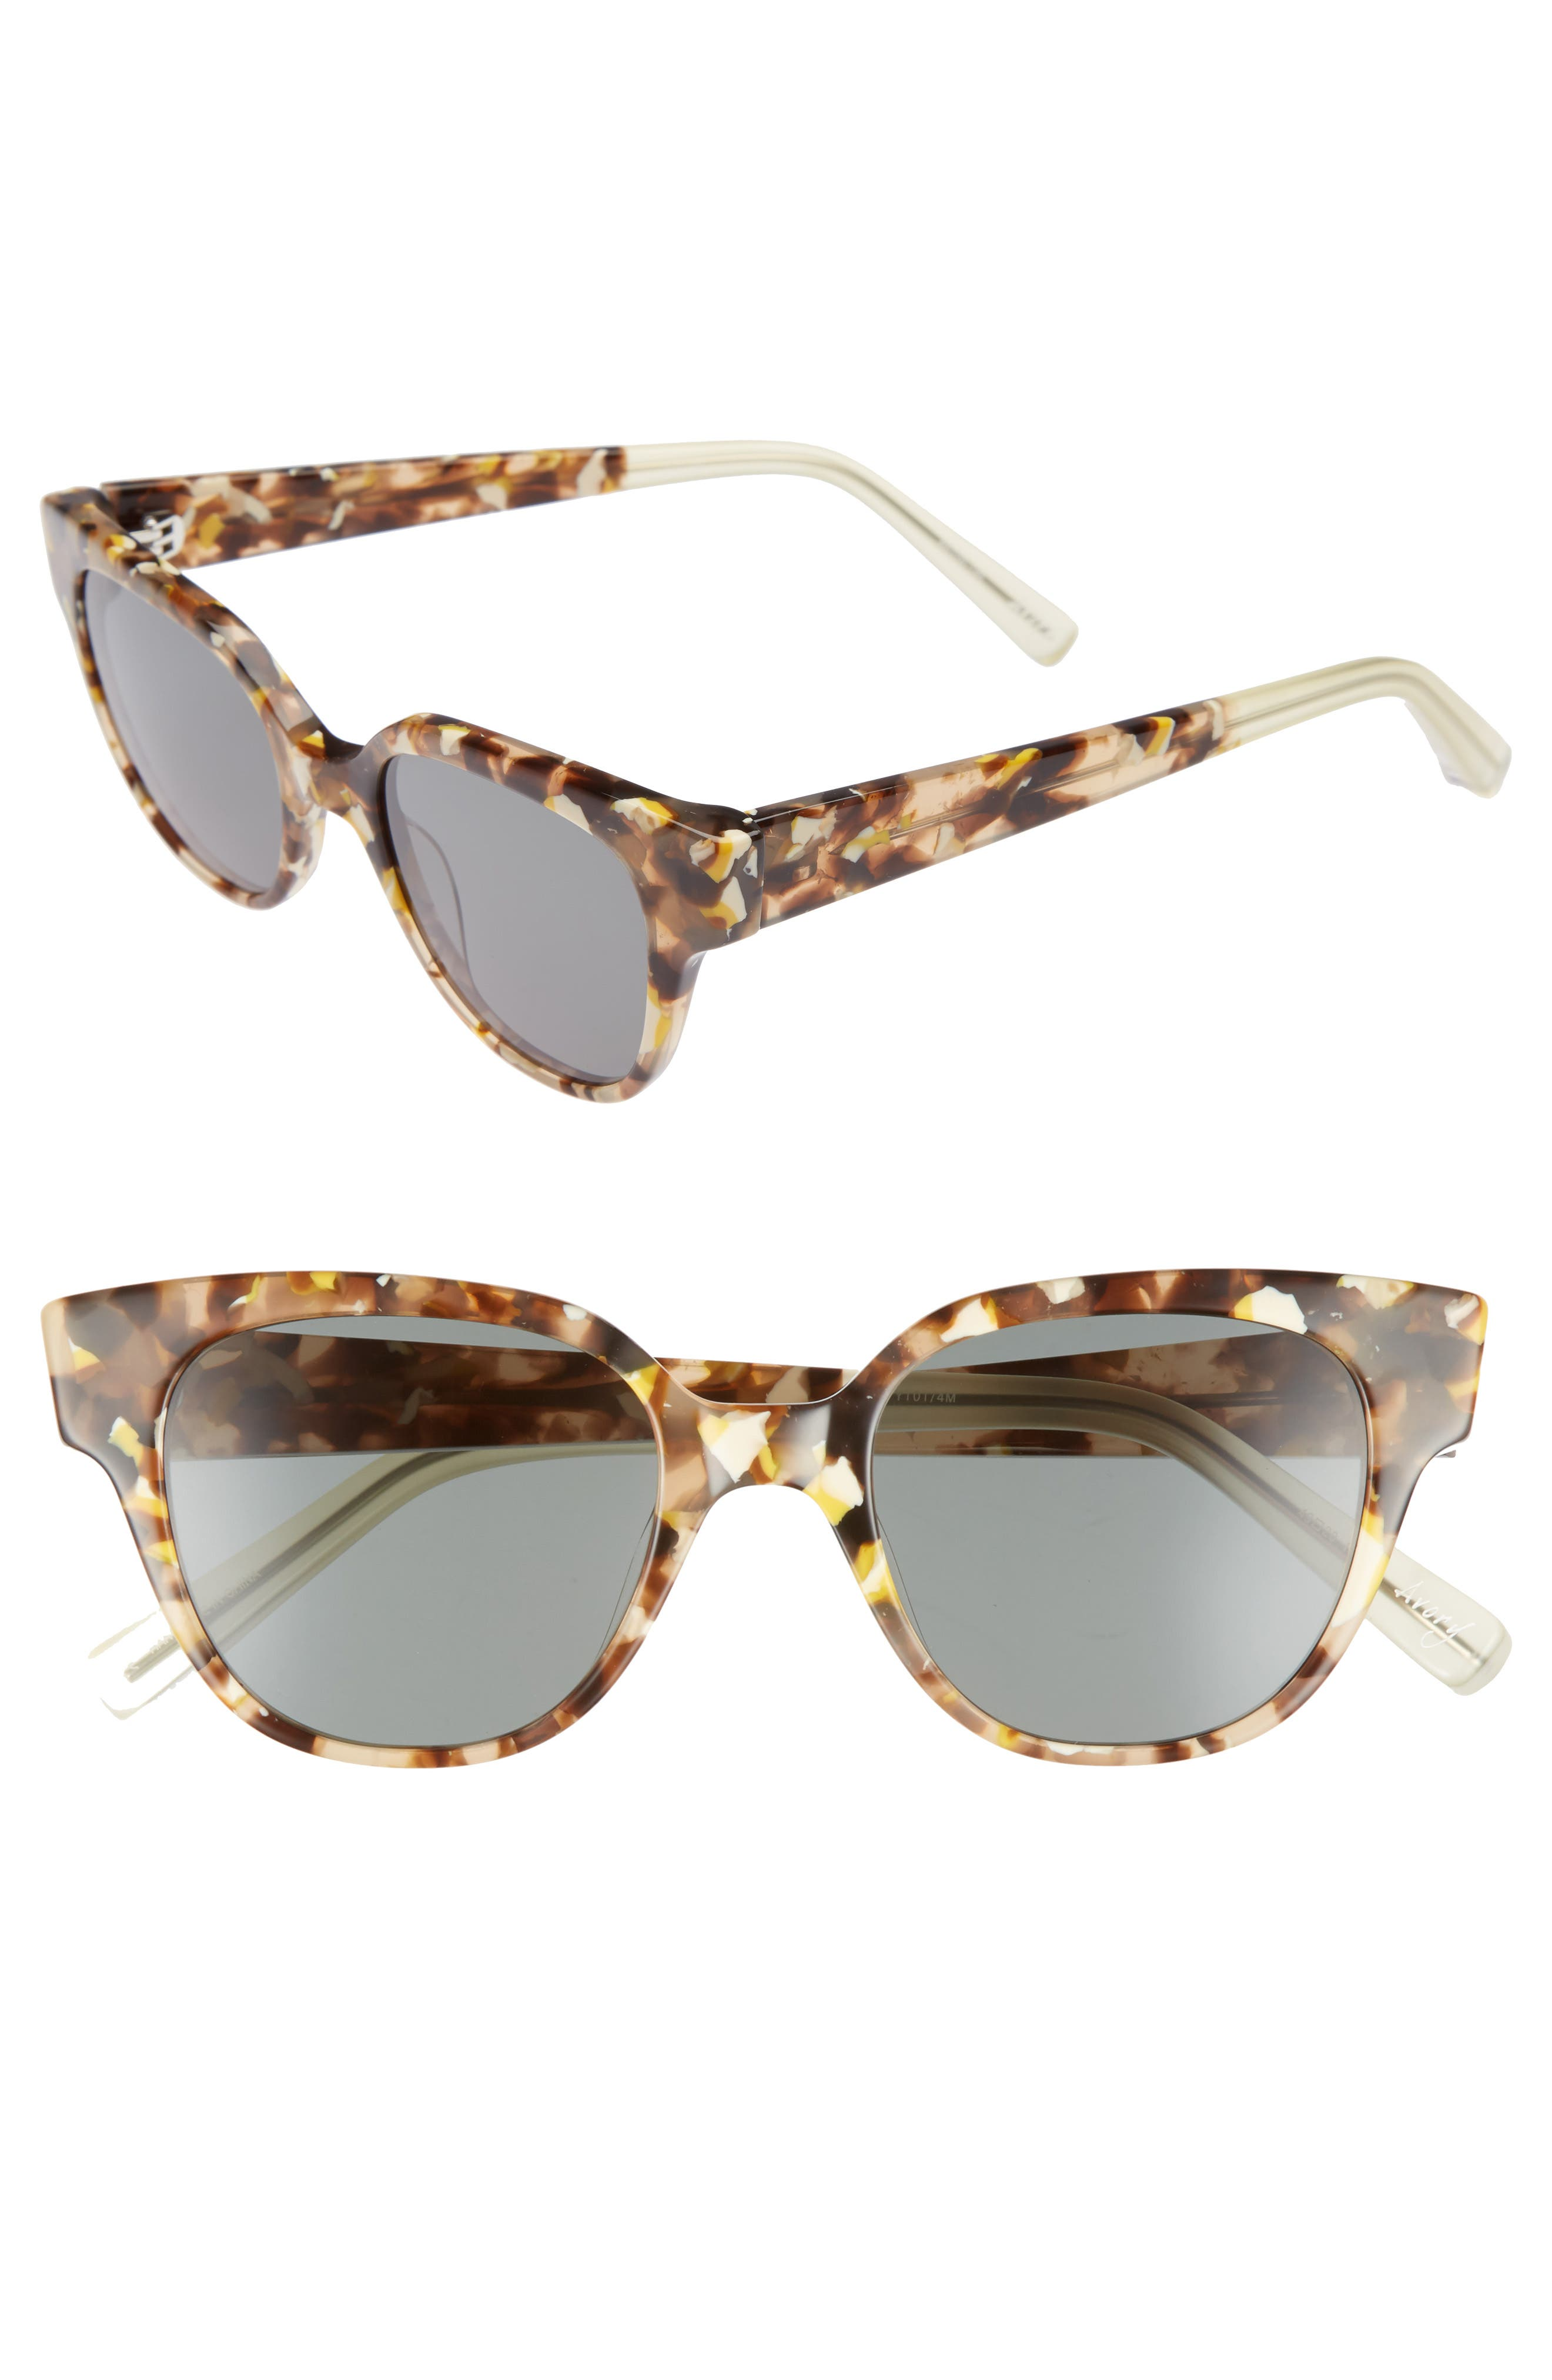 Elizabeth and James Avory 49mm Cat Eye Sunglasses